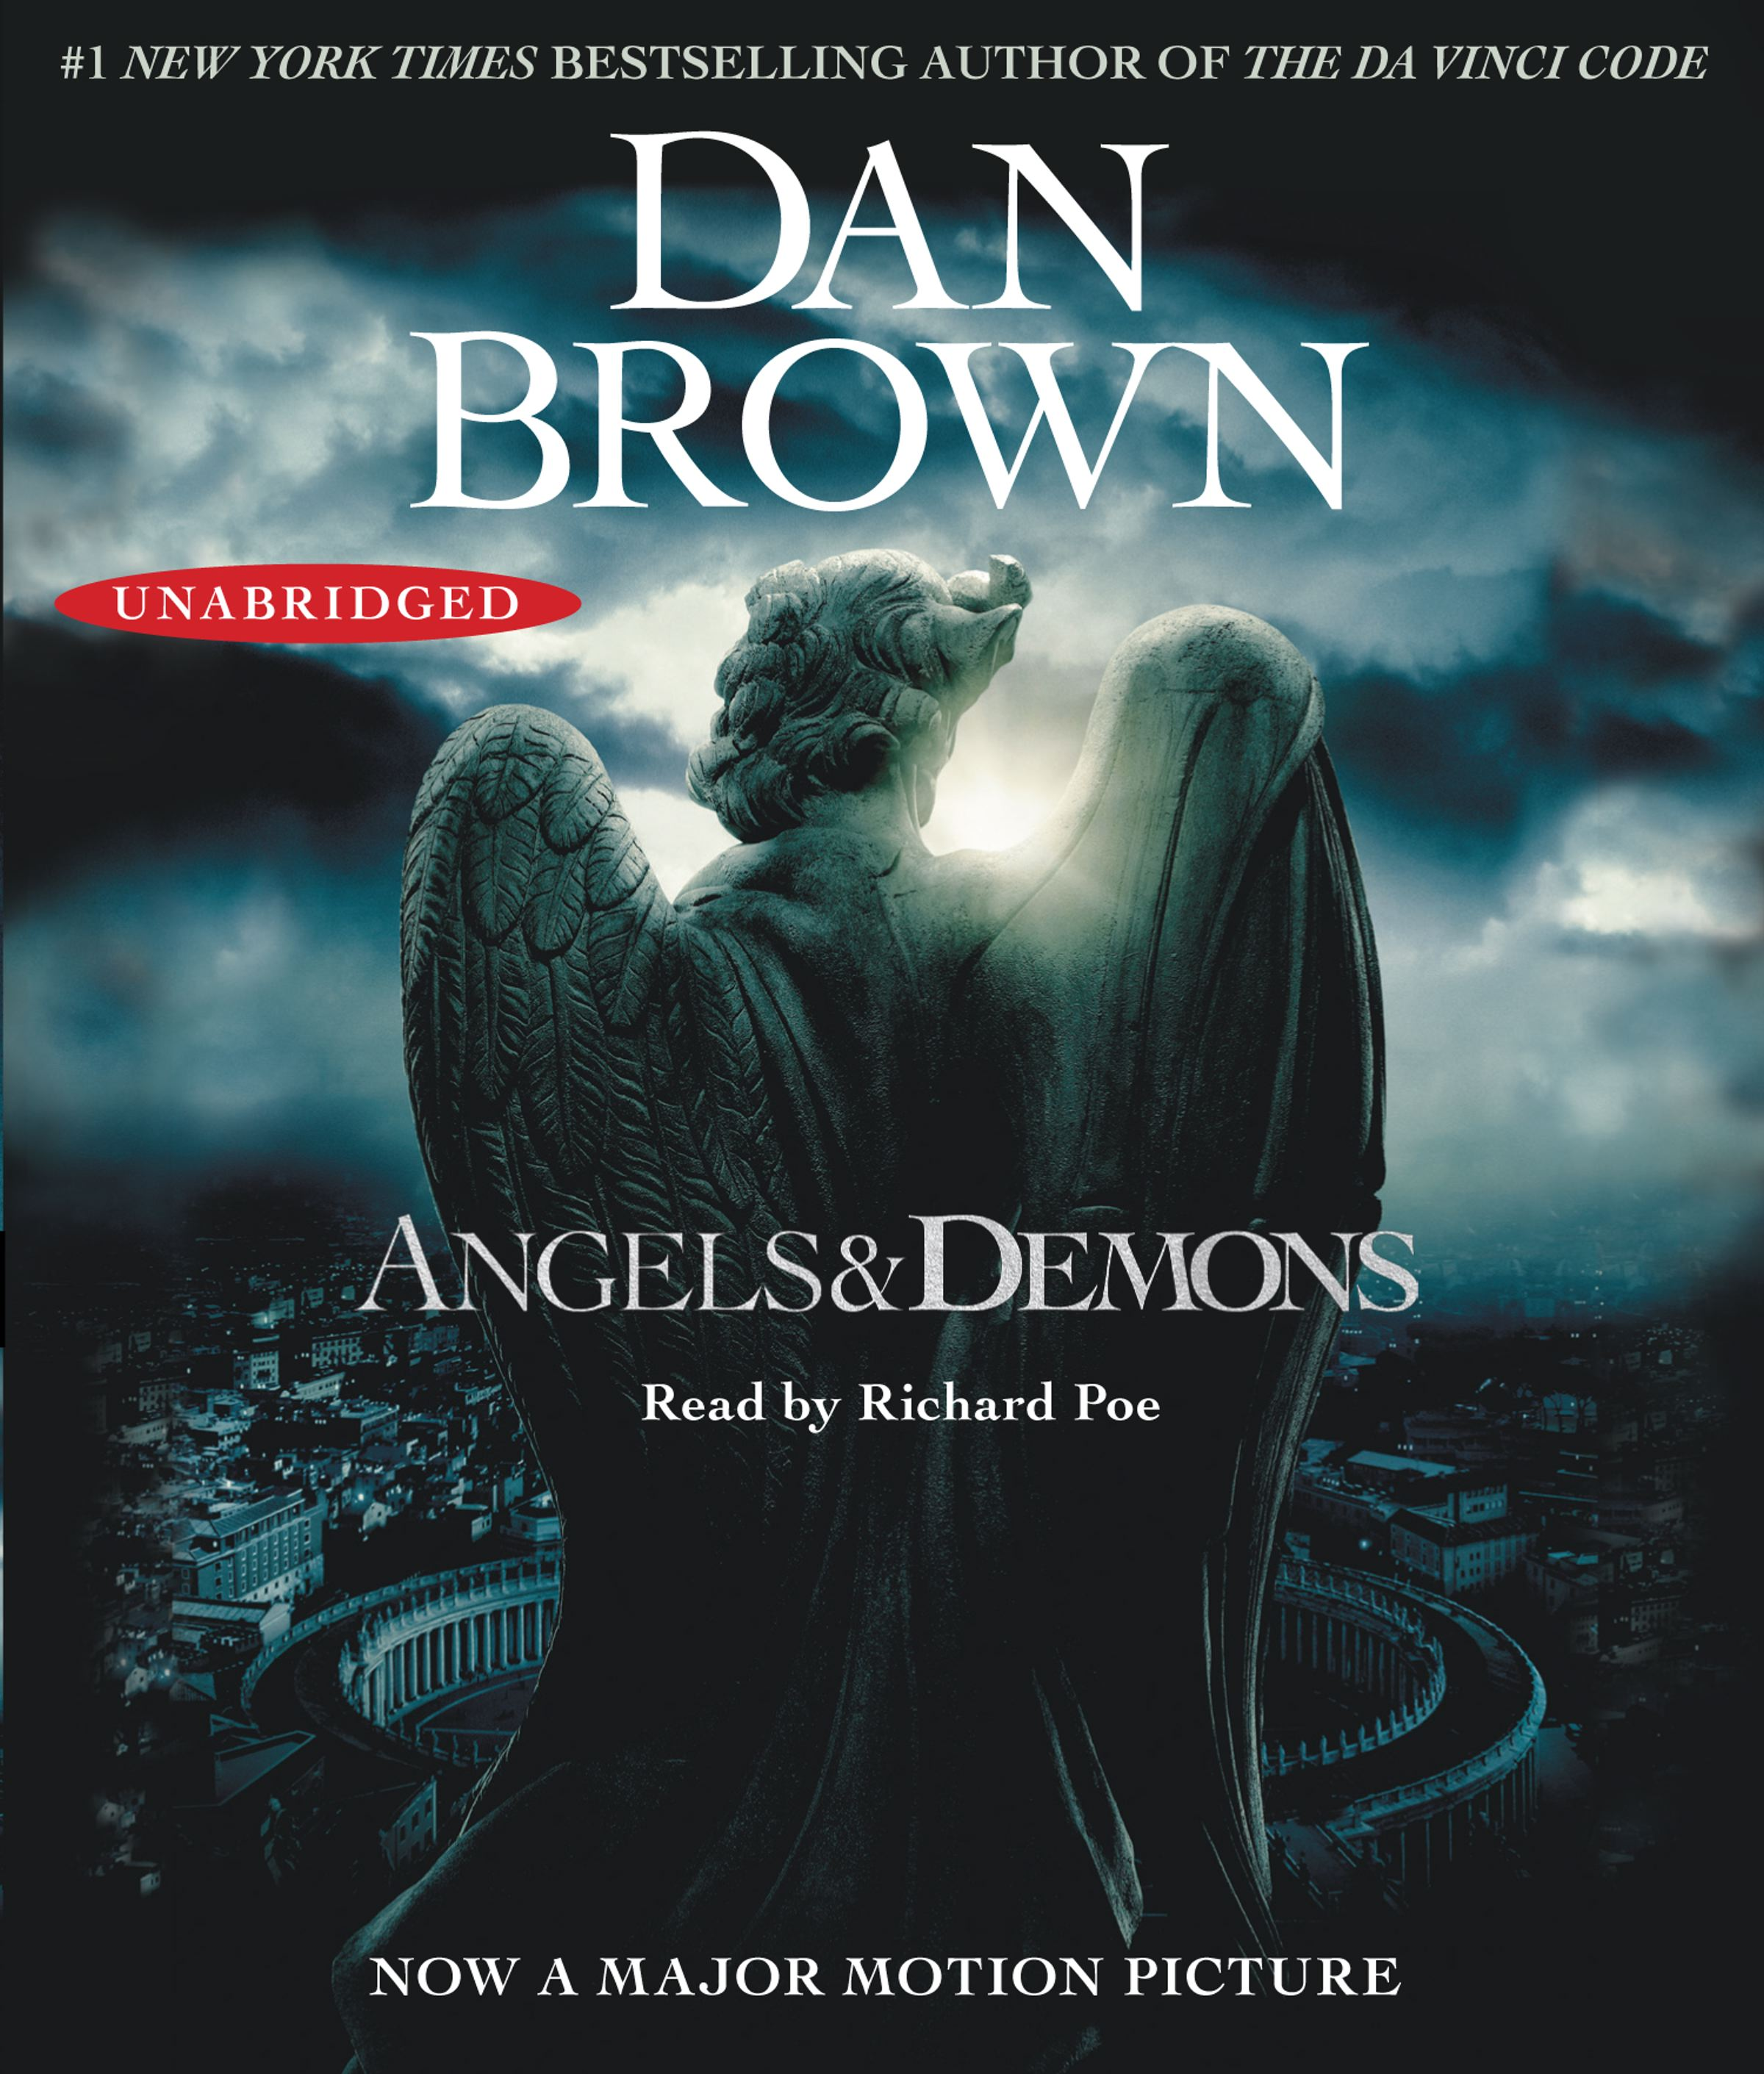 angels and demons dan brown Read book: angels & demons by dan brown online free online reading angels & demons is available you can read book angels & demons by dan brown in our library for absolutely free.